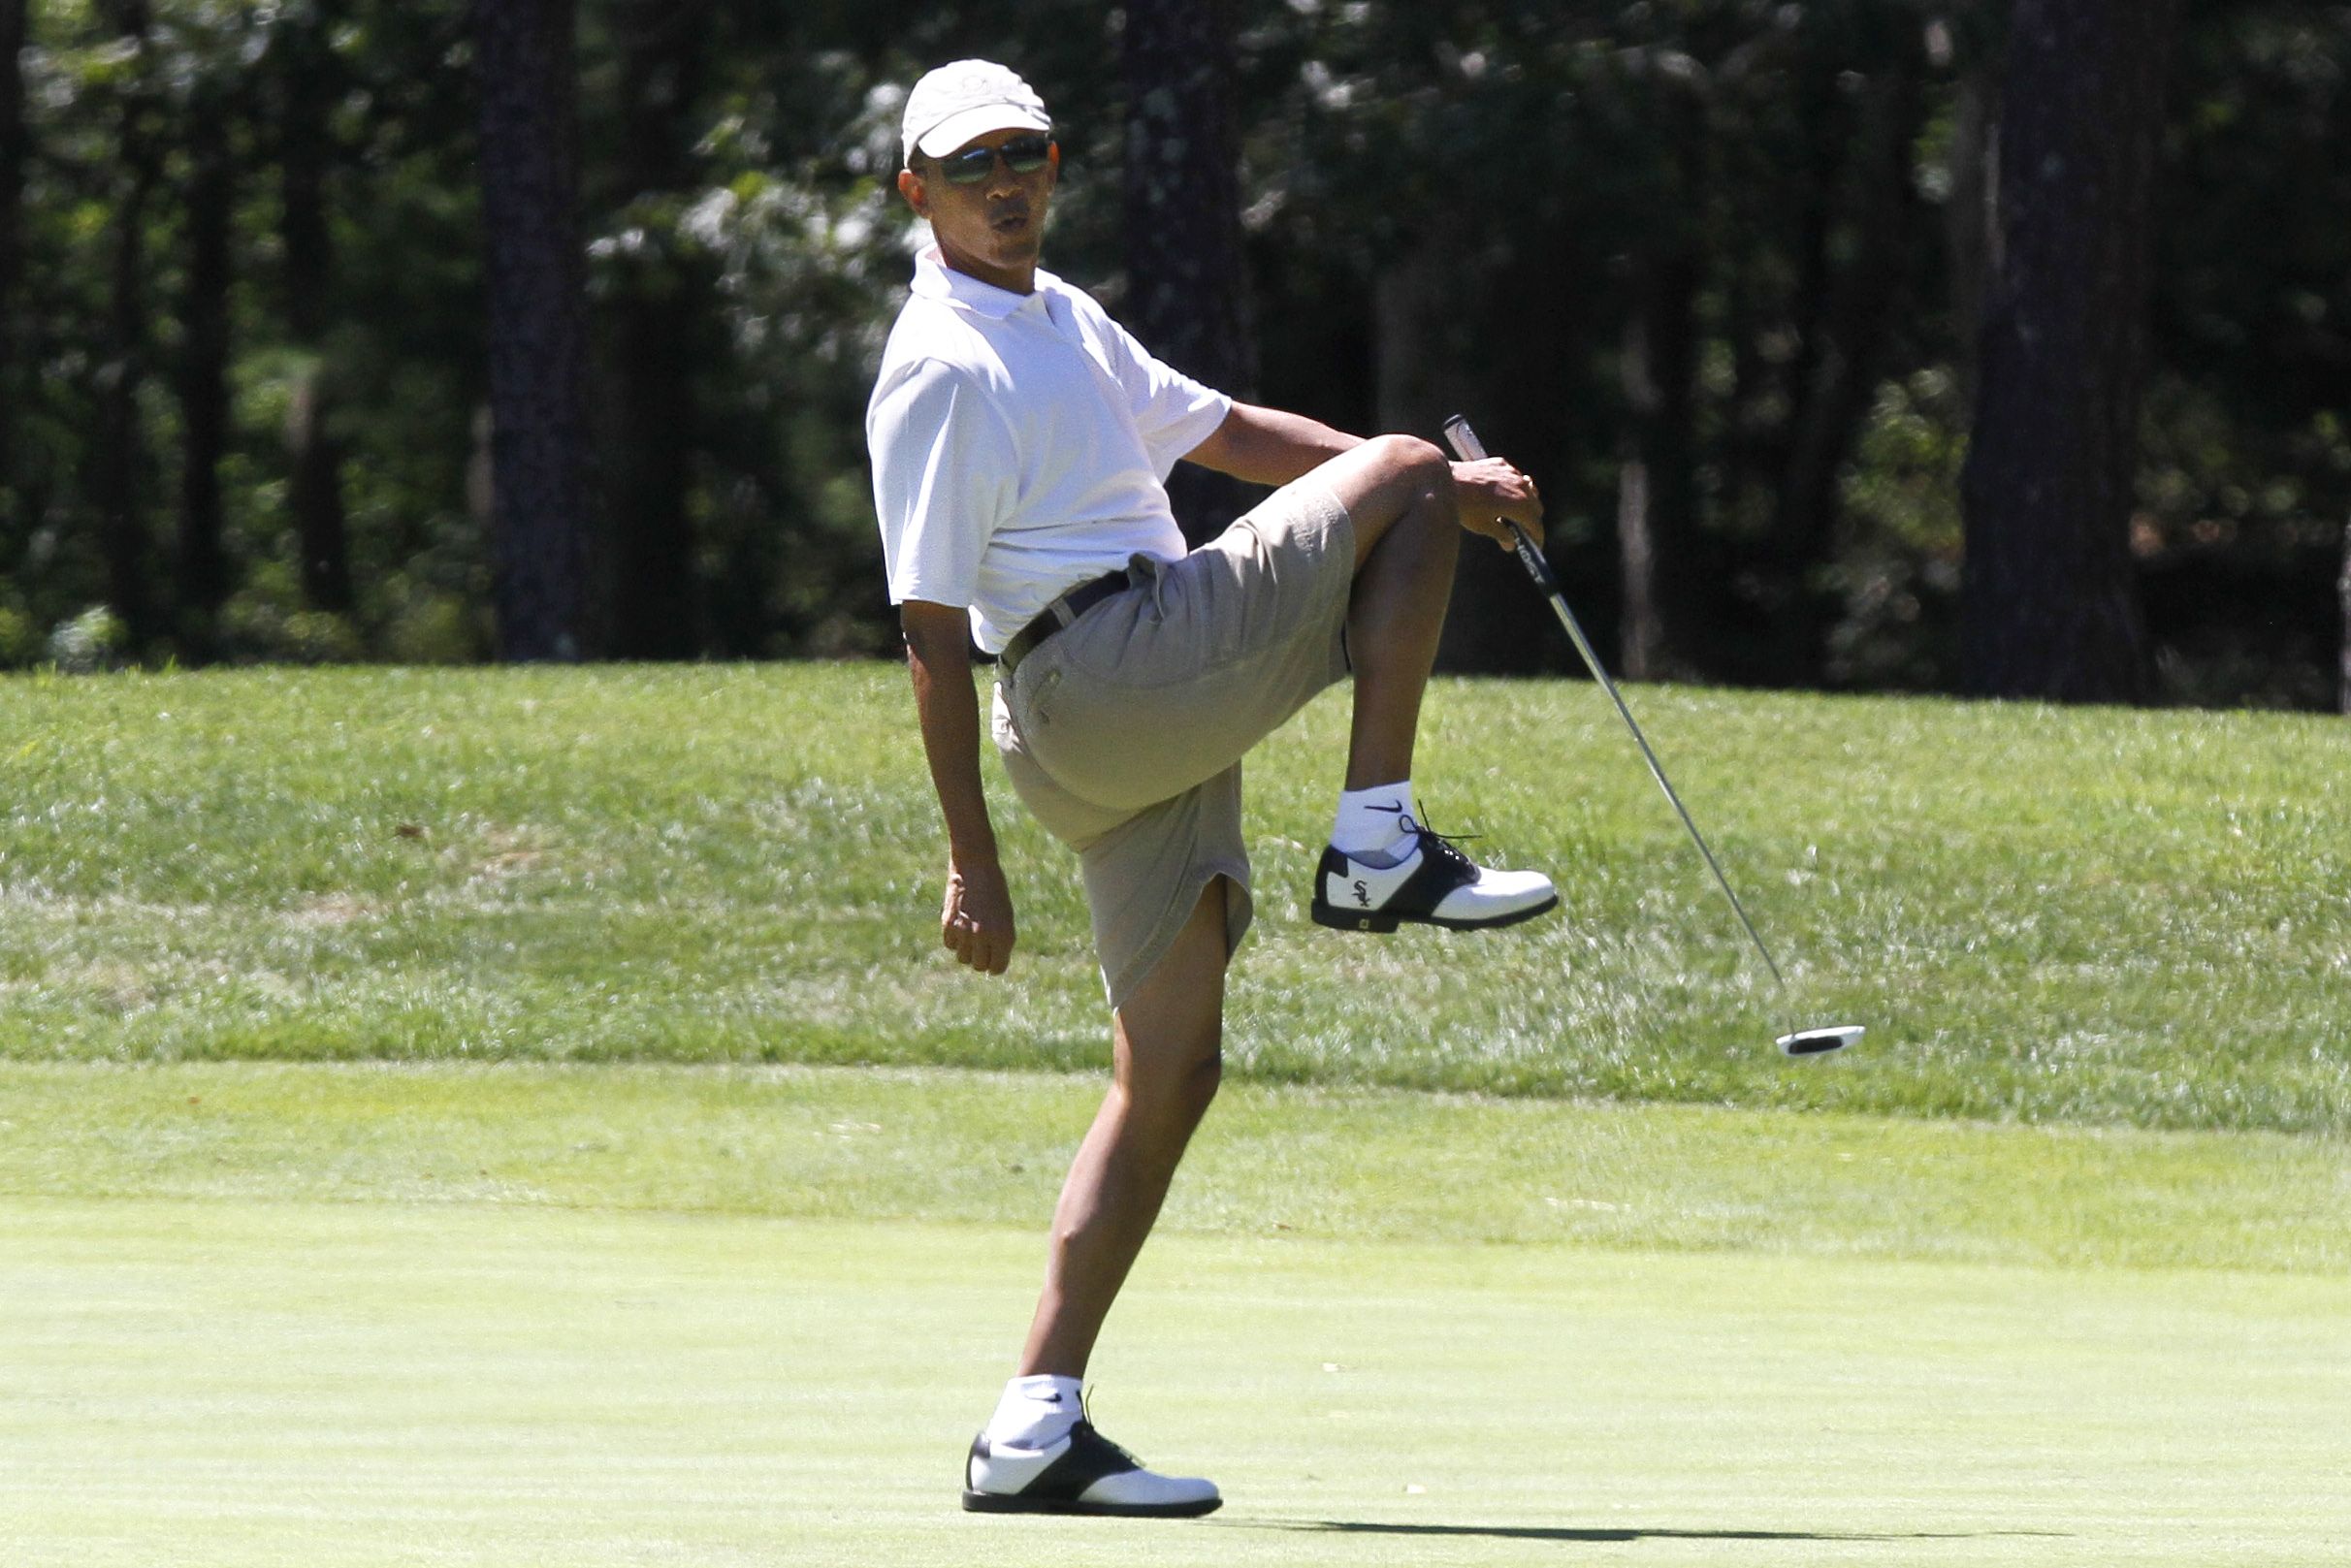 Obama Blackballed at Golf Course for Being 'Hostile to Israel'